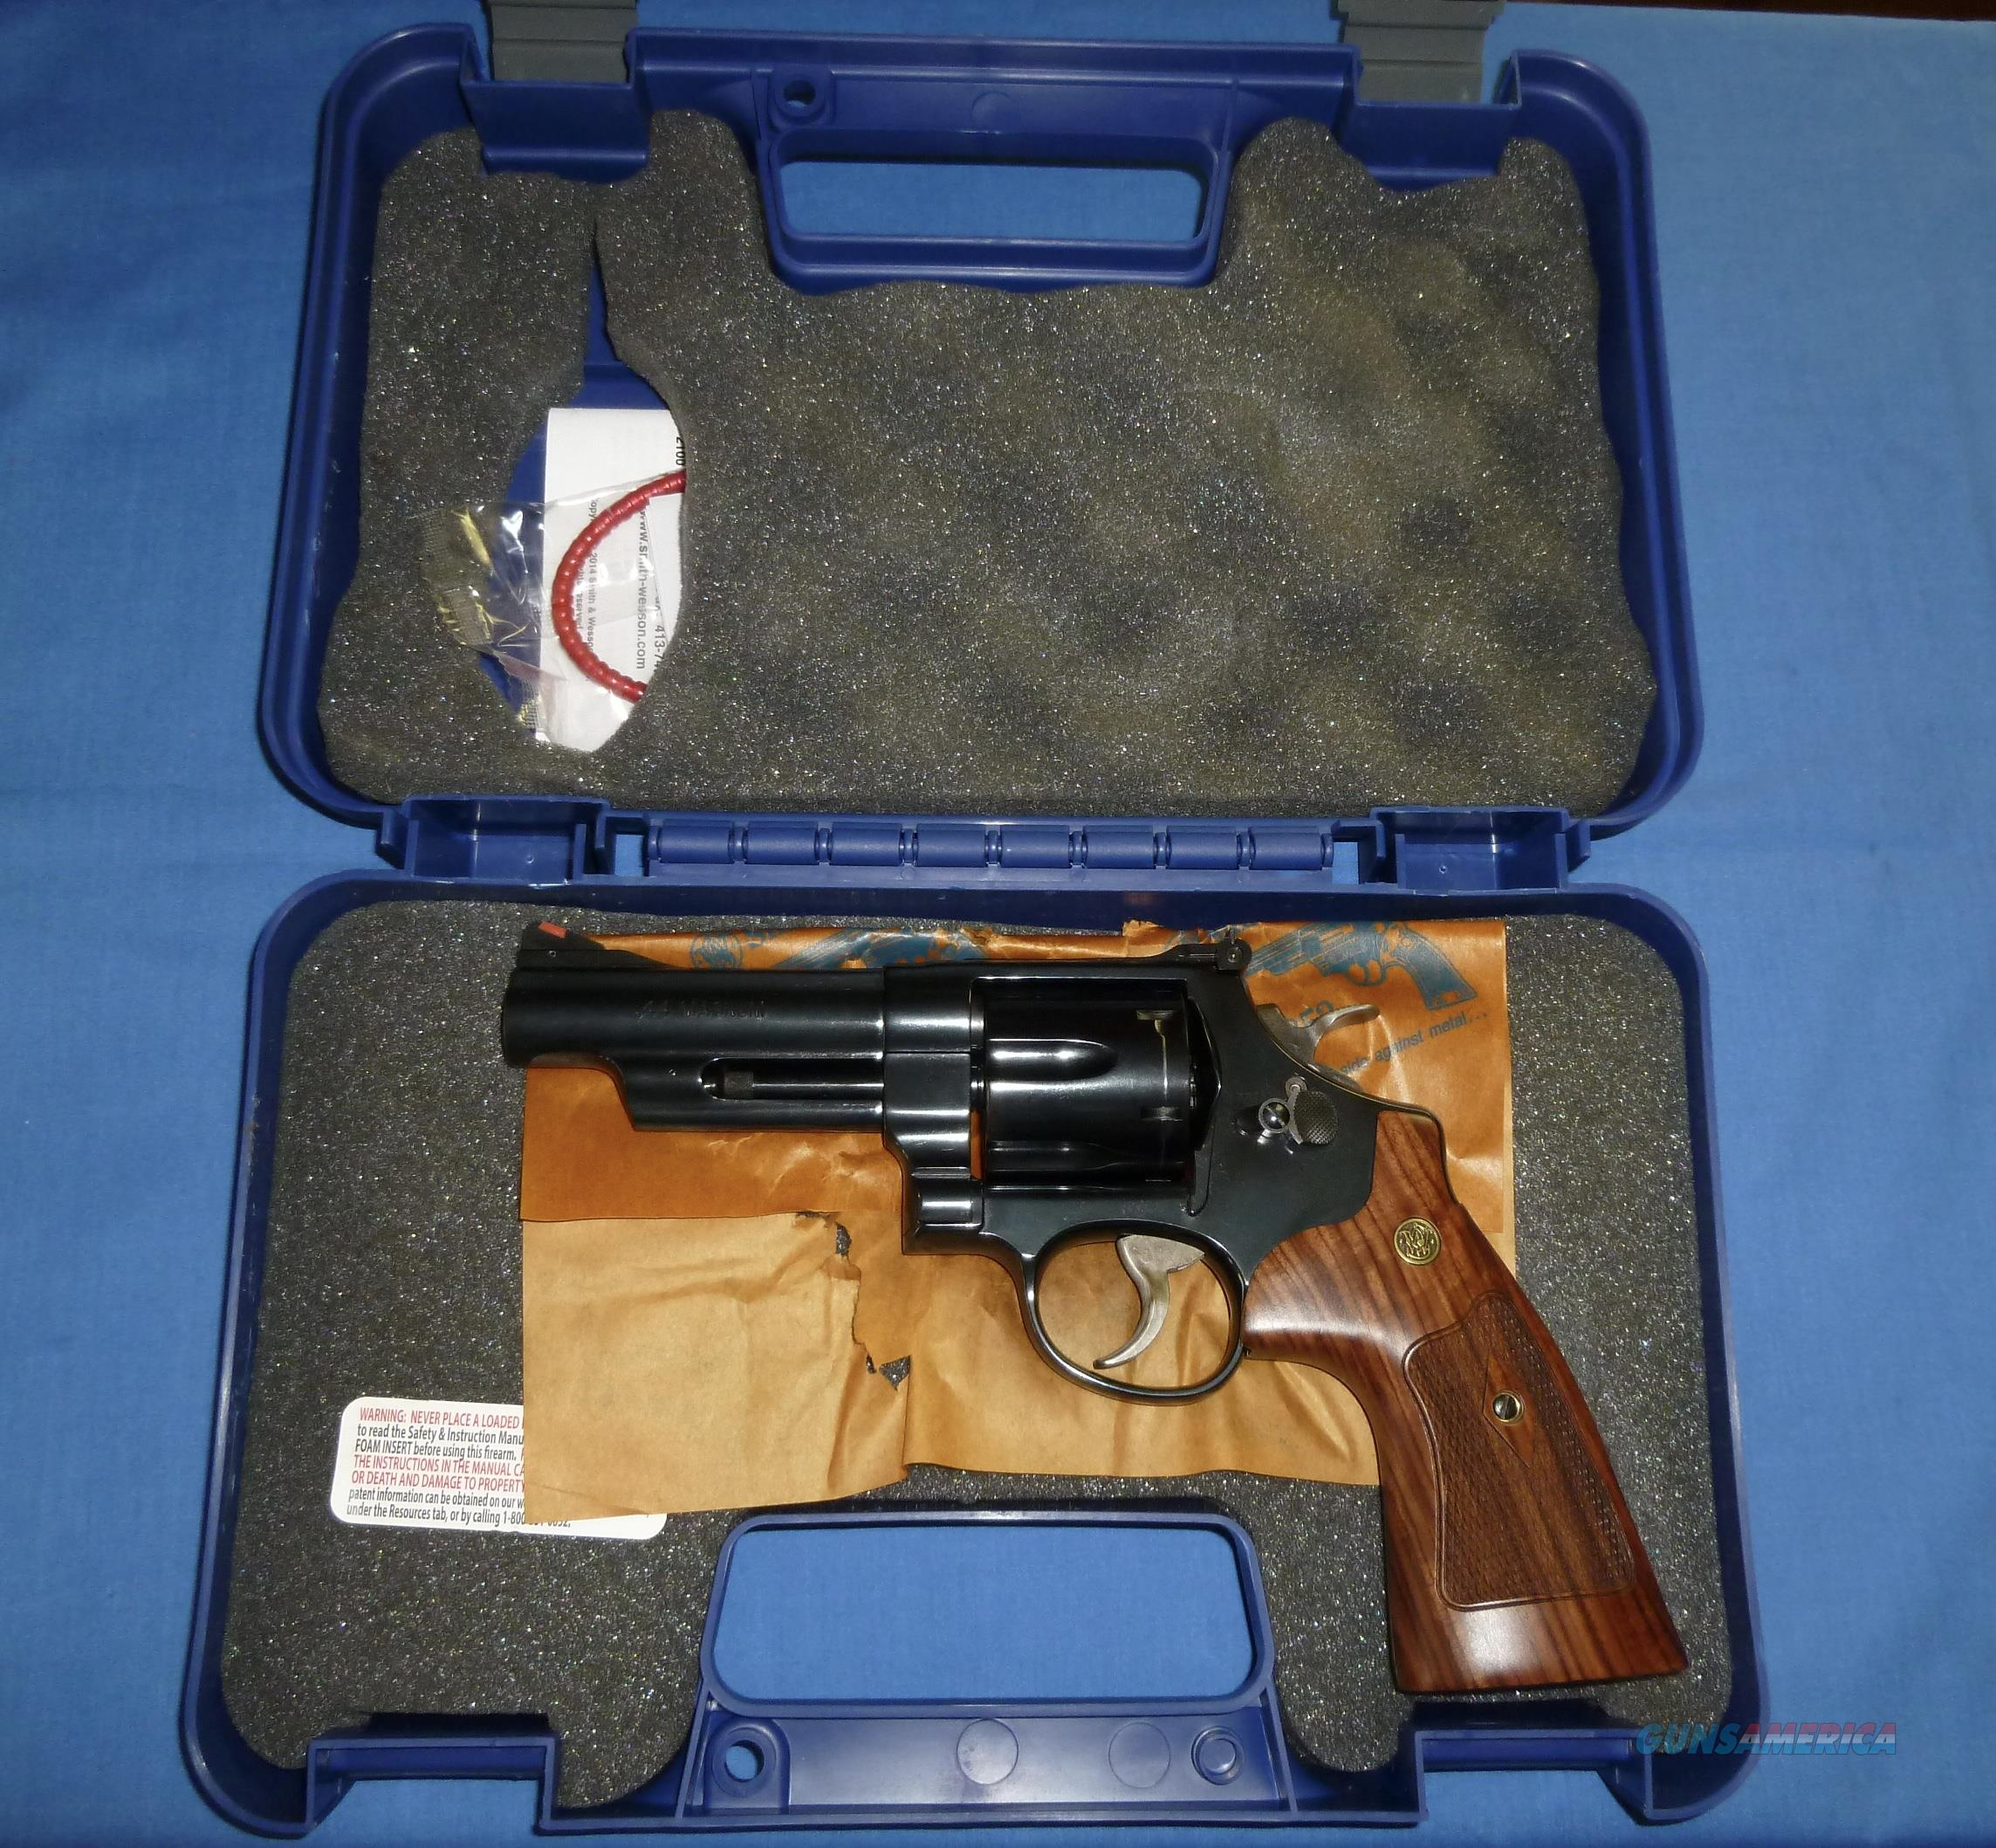 CLEARANCE PRICED!   SMITH & WESSON MODEL 29 CLASSIC 44 MAGNUM REVOLVER  Guns > Pistols > Smith & Wesson Revolvers > Model 629